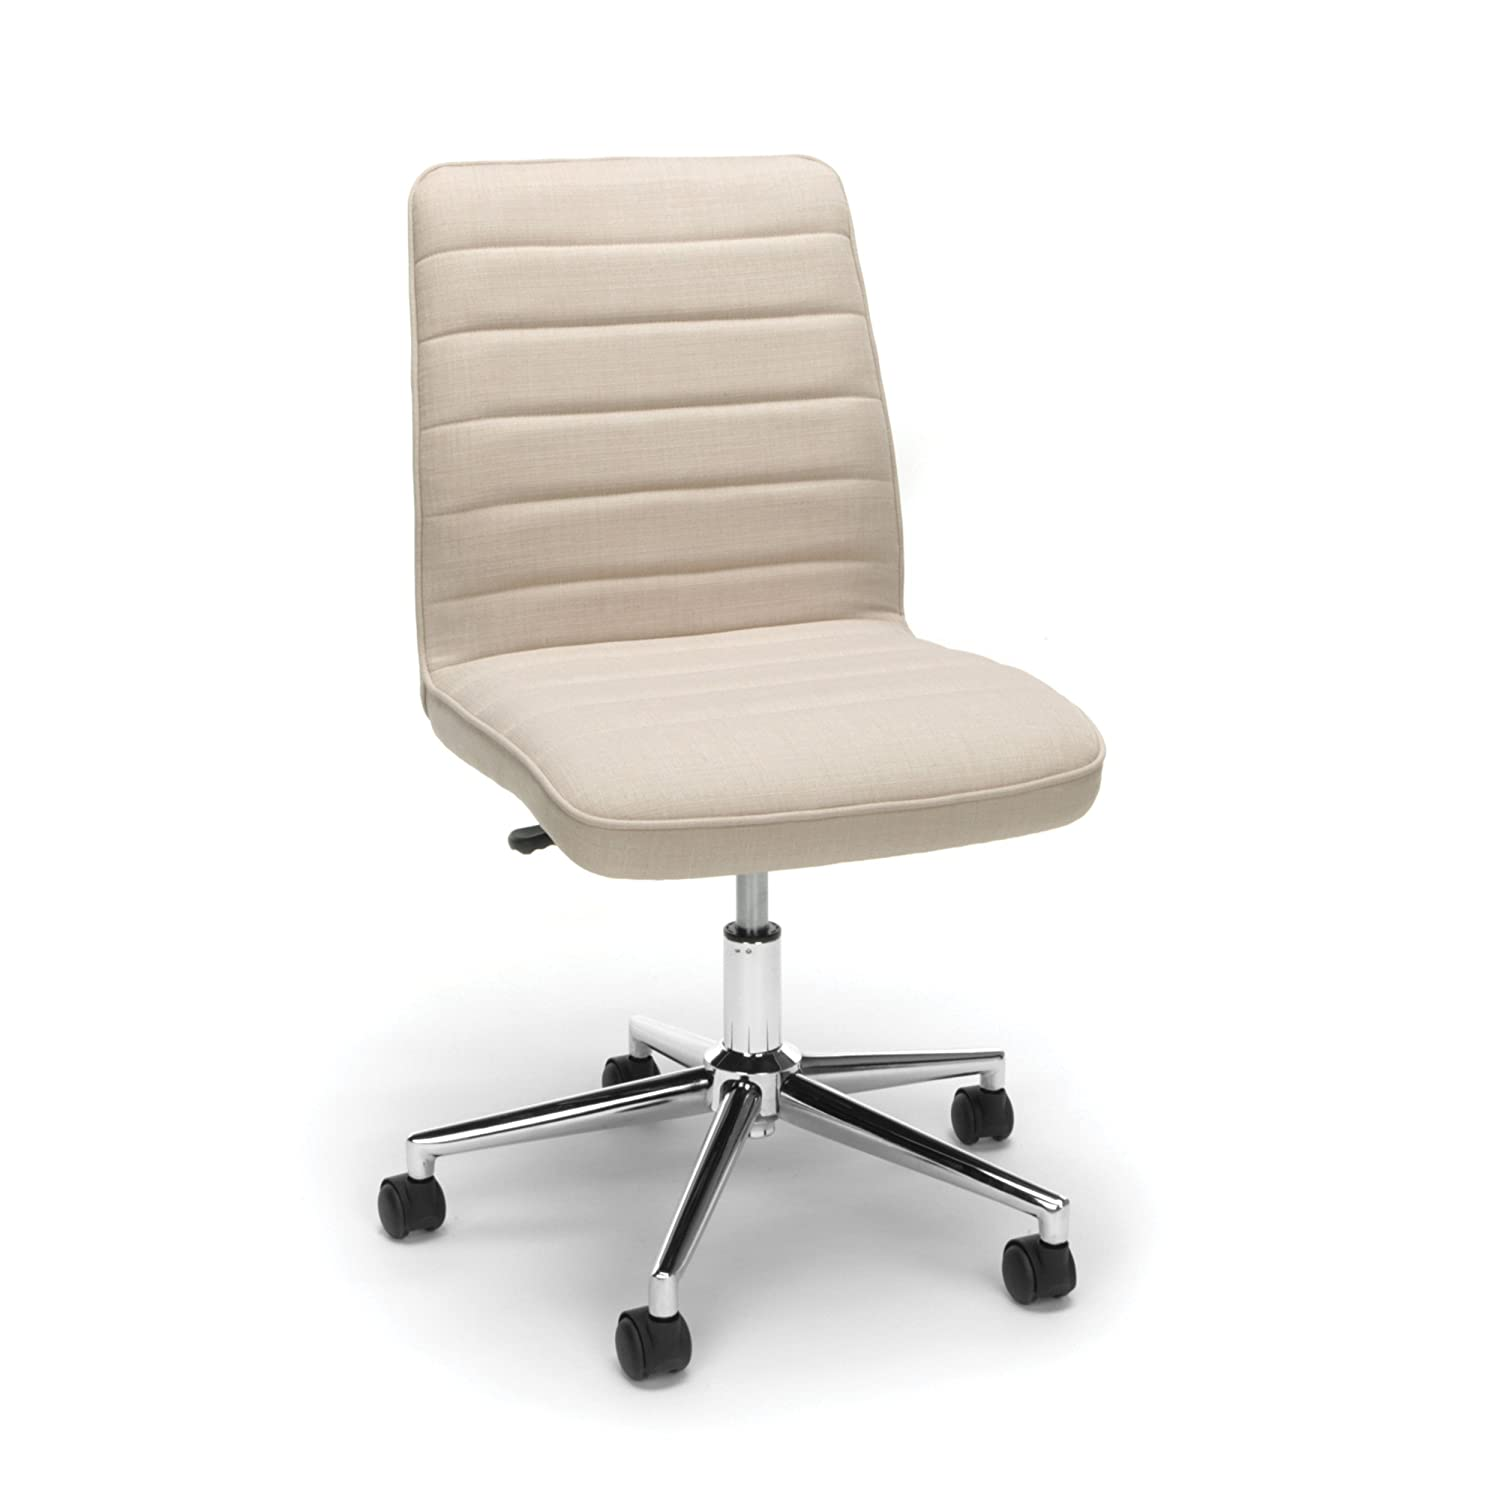 Essentials Upholstered Mid-Back Office Chair – Armless Fabric Computer Chair, Tan